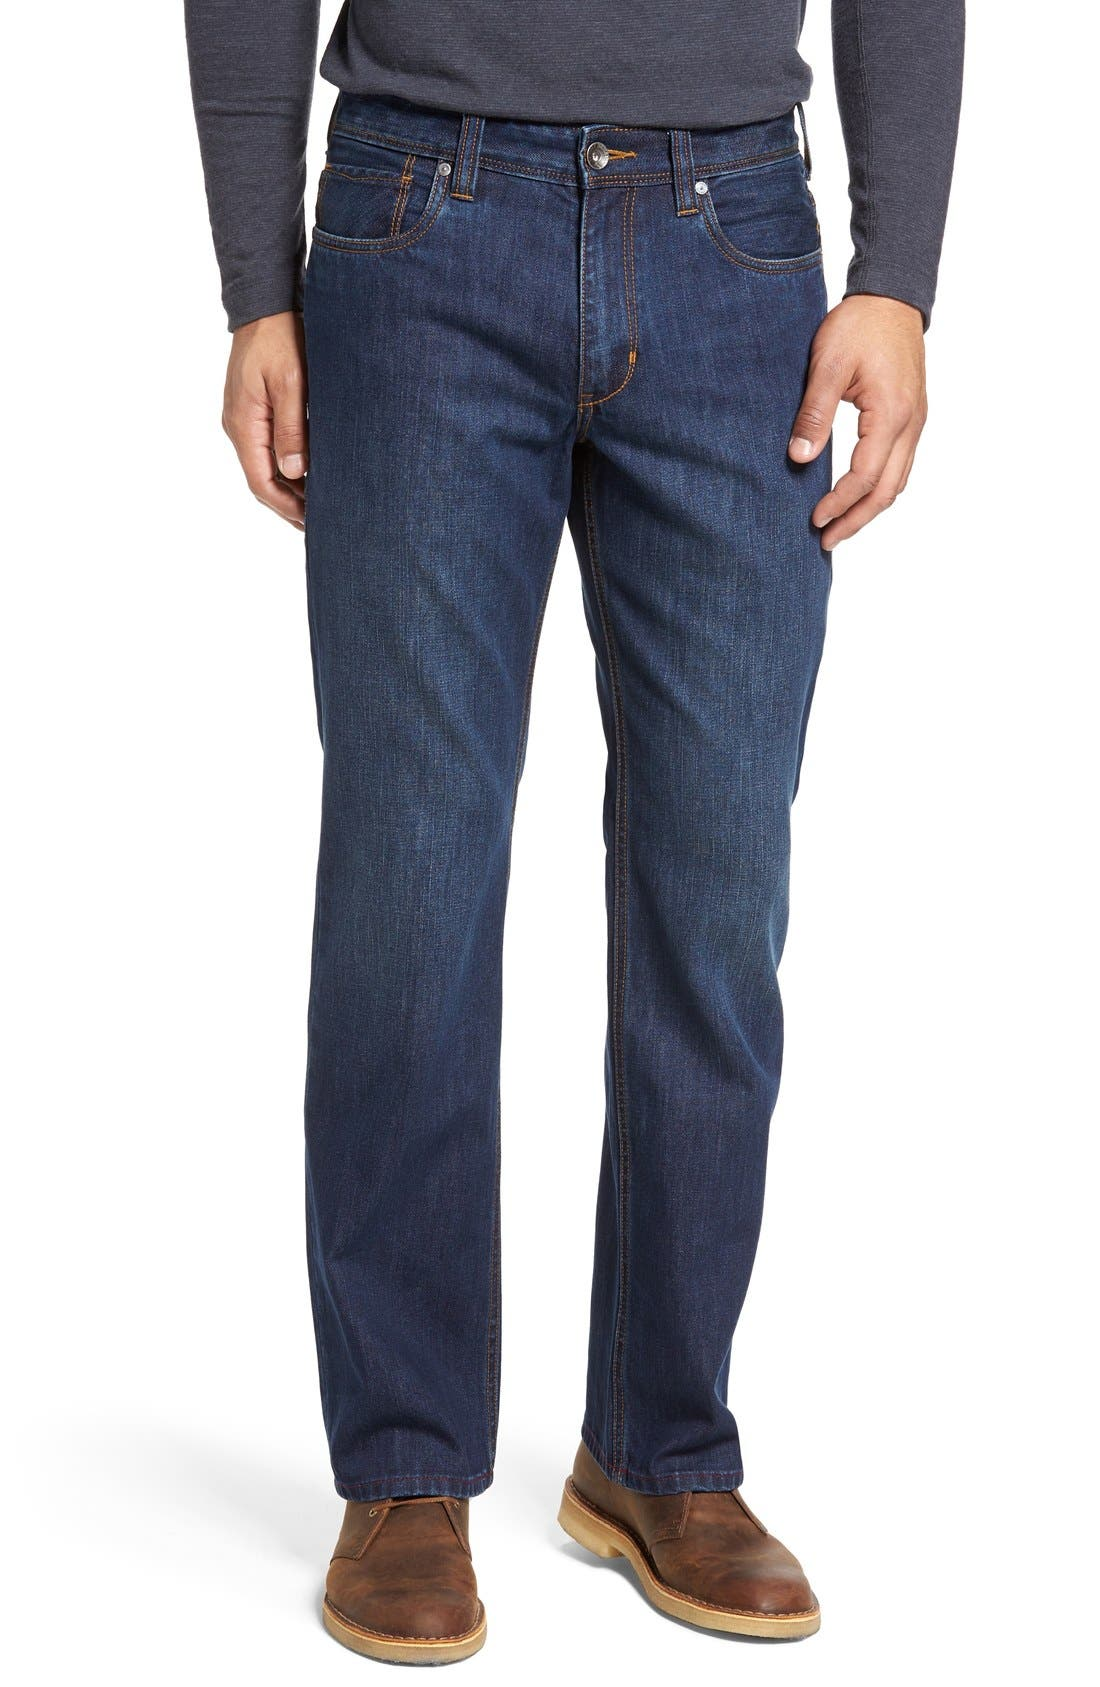 'Santorini' Relaxed Fit Jeans,                             Main thumbnail 1, color,                             Dark Indigo Wash